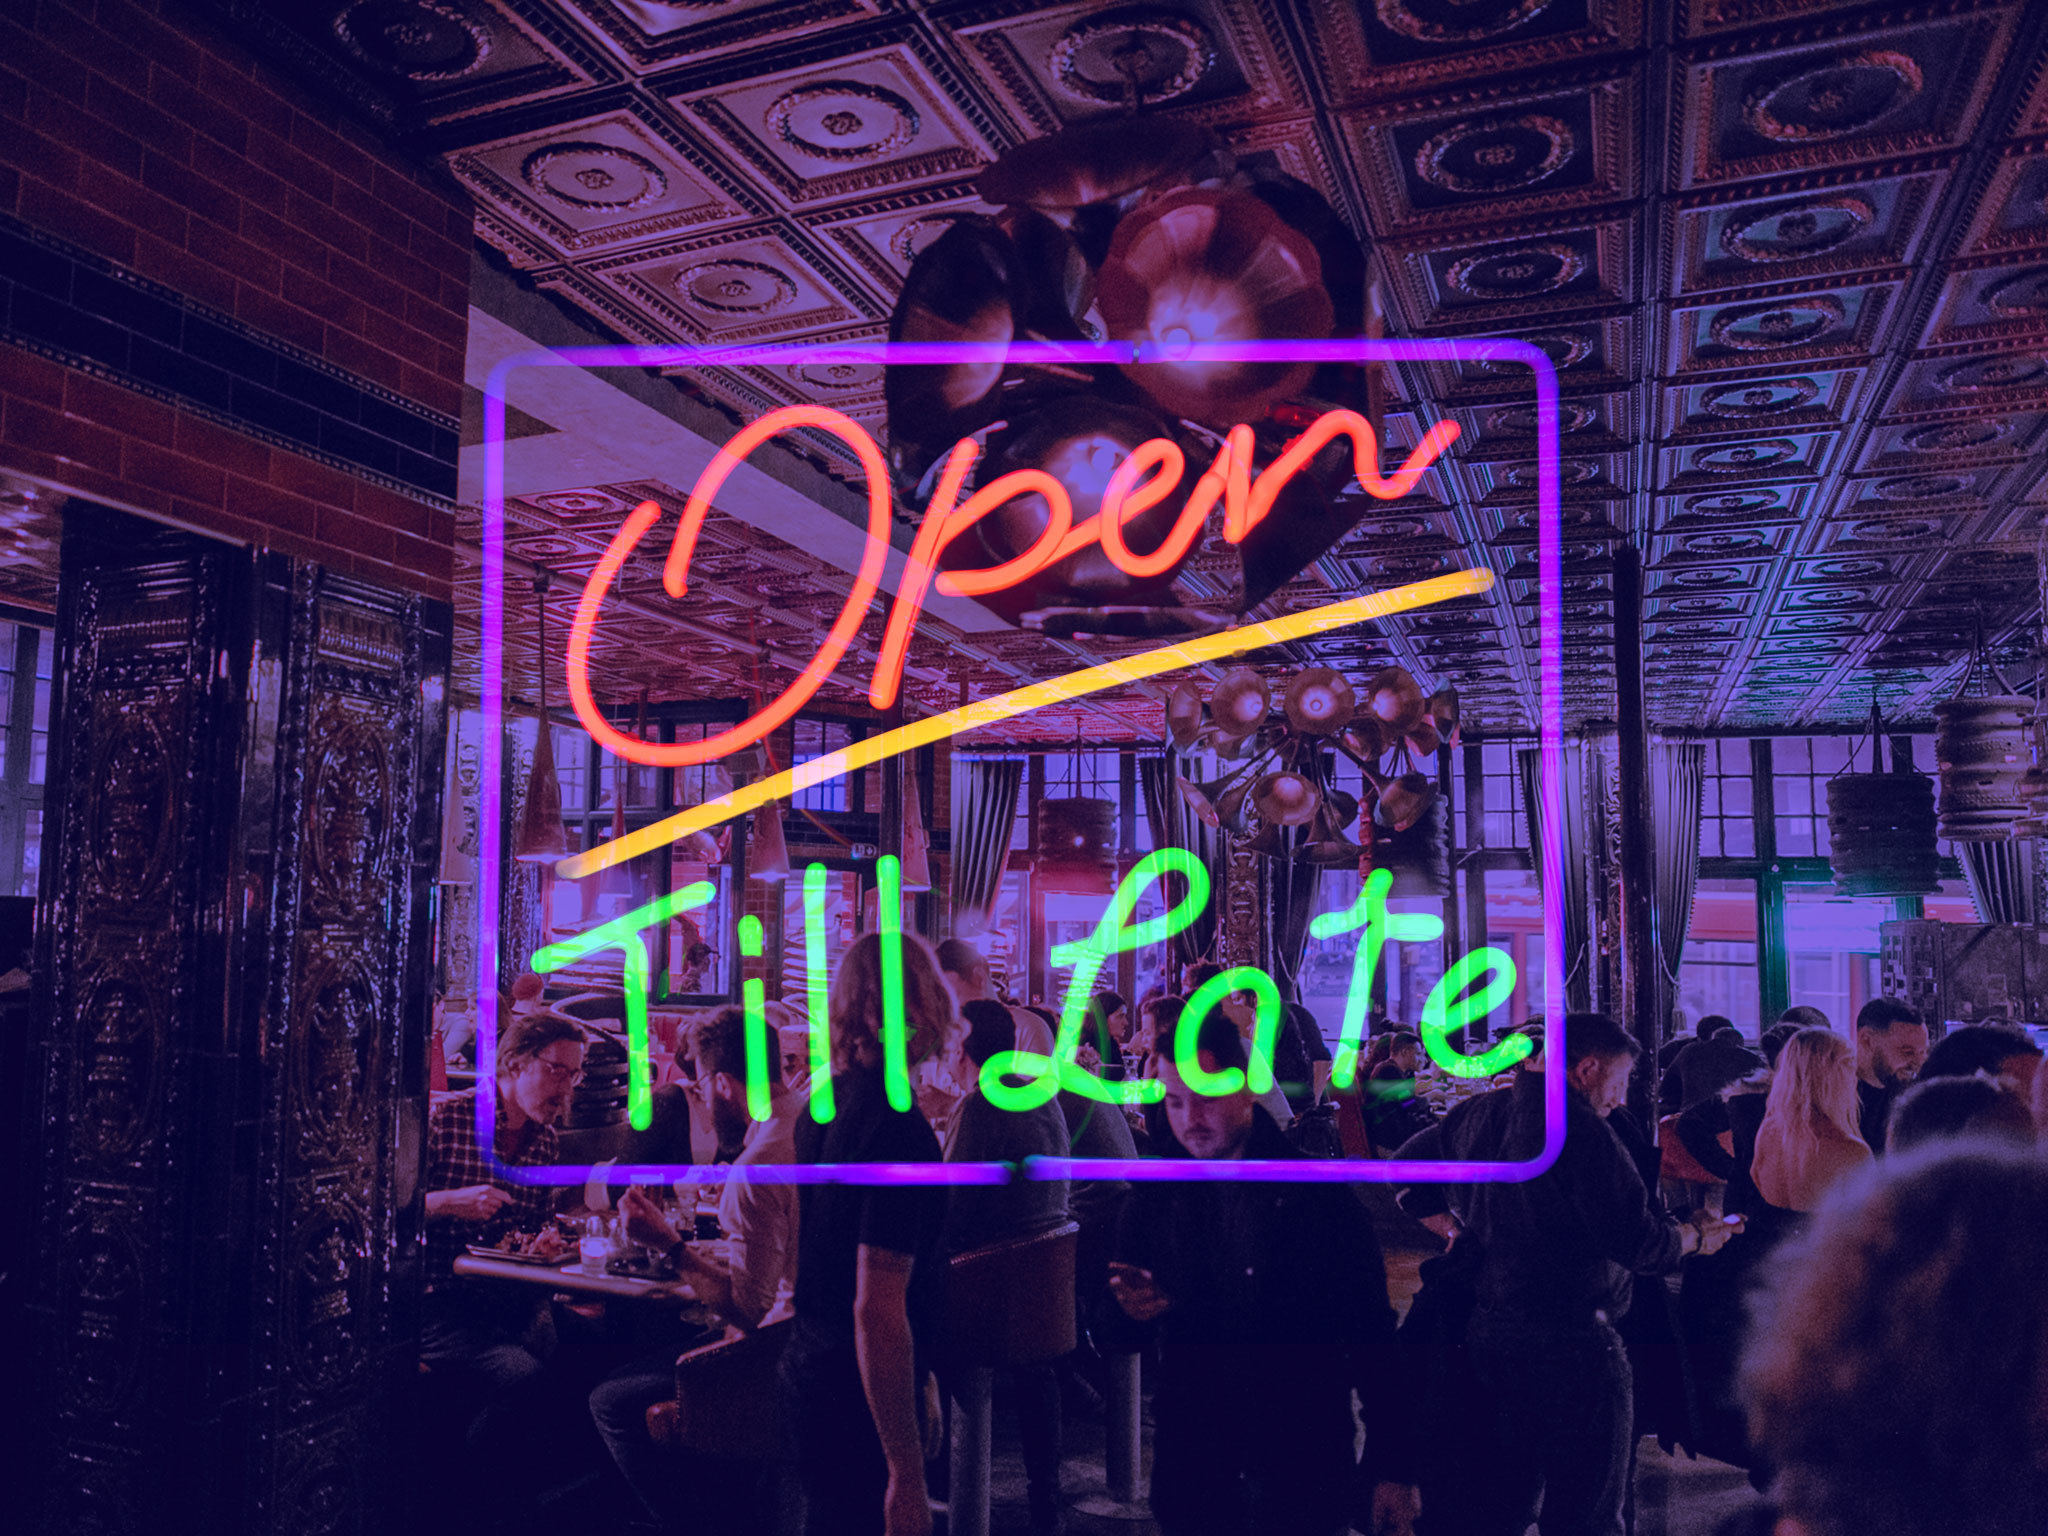 Late-night bars and pubs